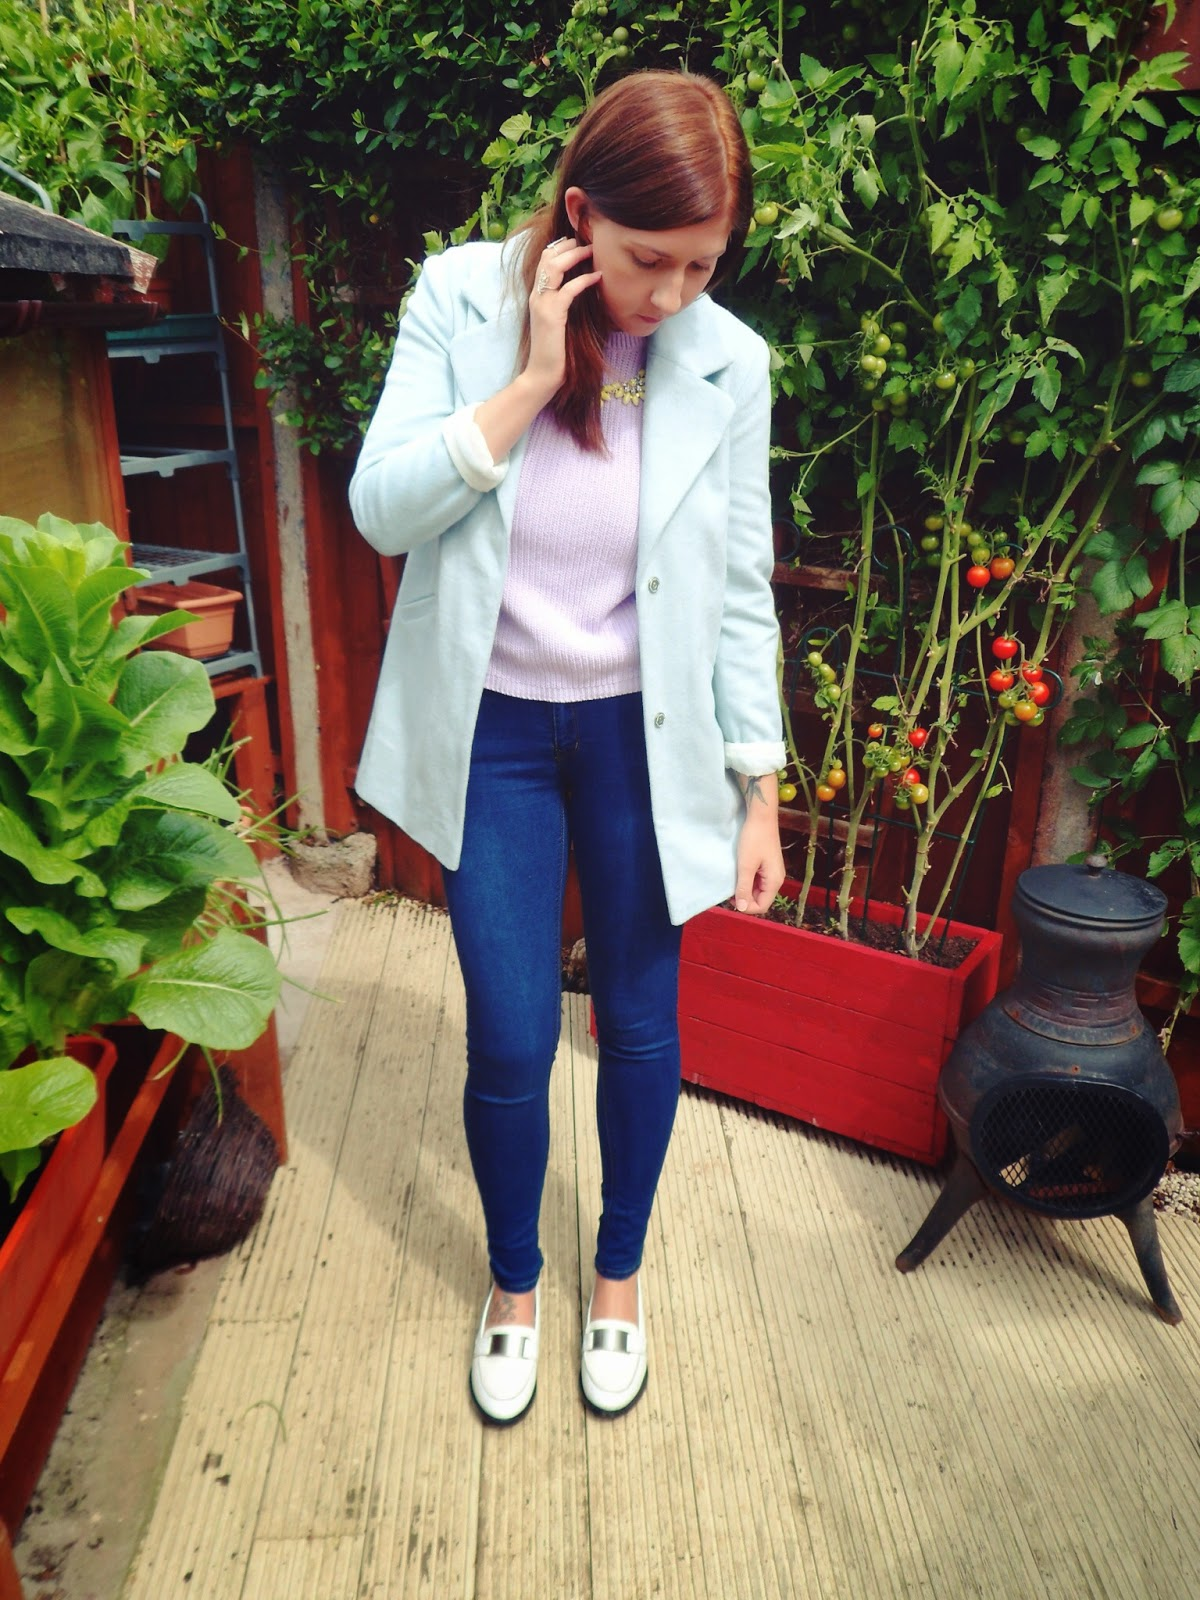 androgyny, pastels, asos, primark, skinny jeans, ootd, boyfriends coat, lilac, blue, leather, Autumn/ Winter 2014, autumn, winter, outfitoftheday, win, whatimwearing, whatibought, asseenonme, fbloggers, fashionbloggers